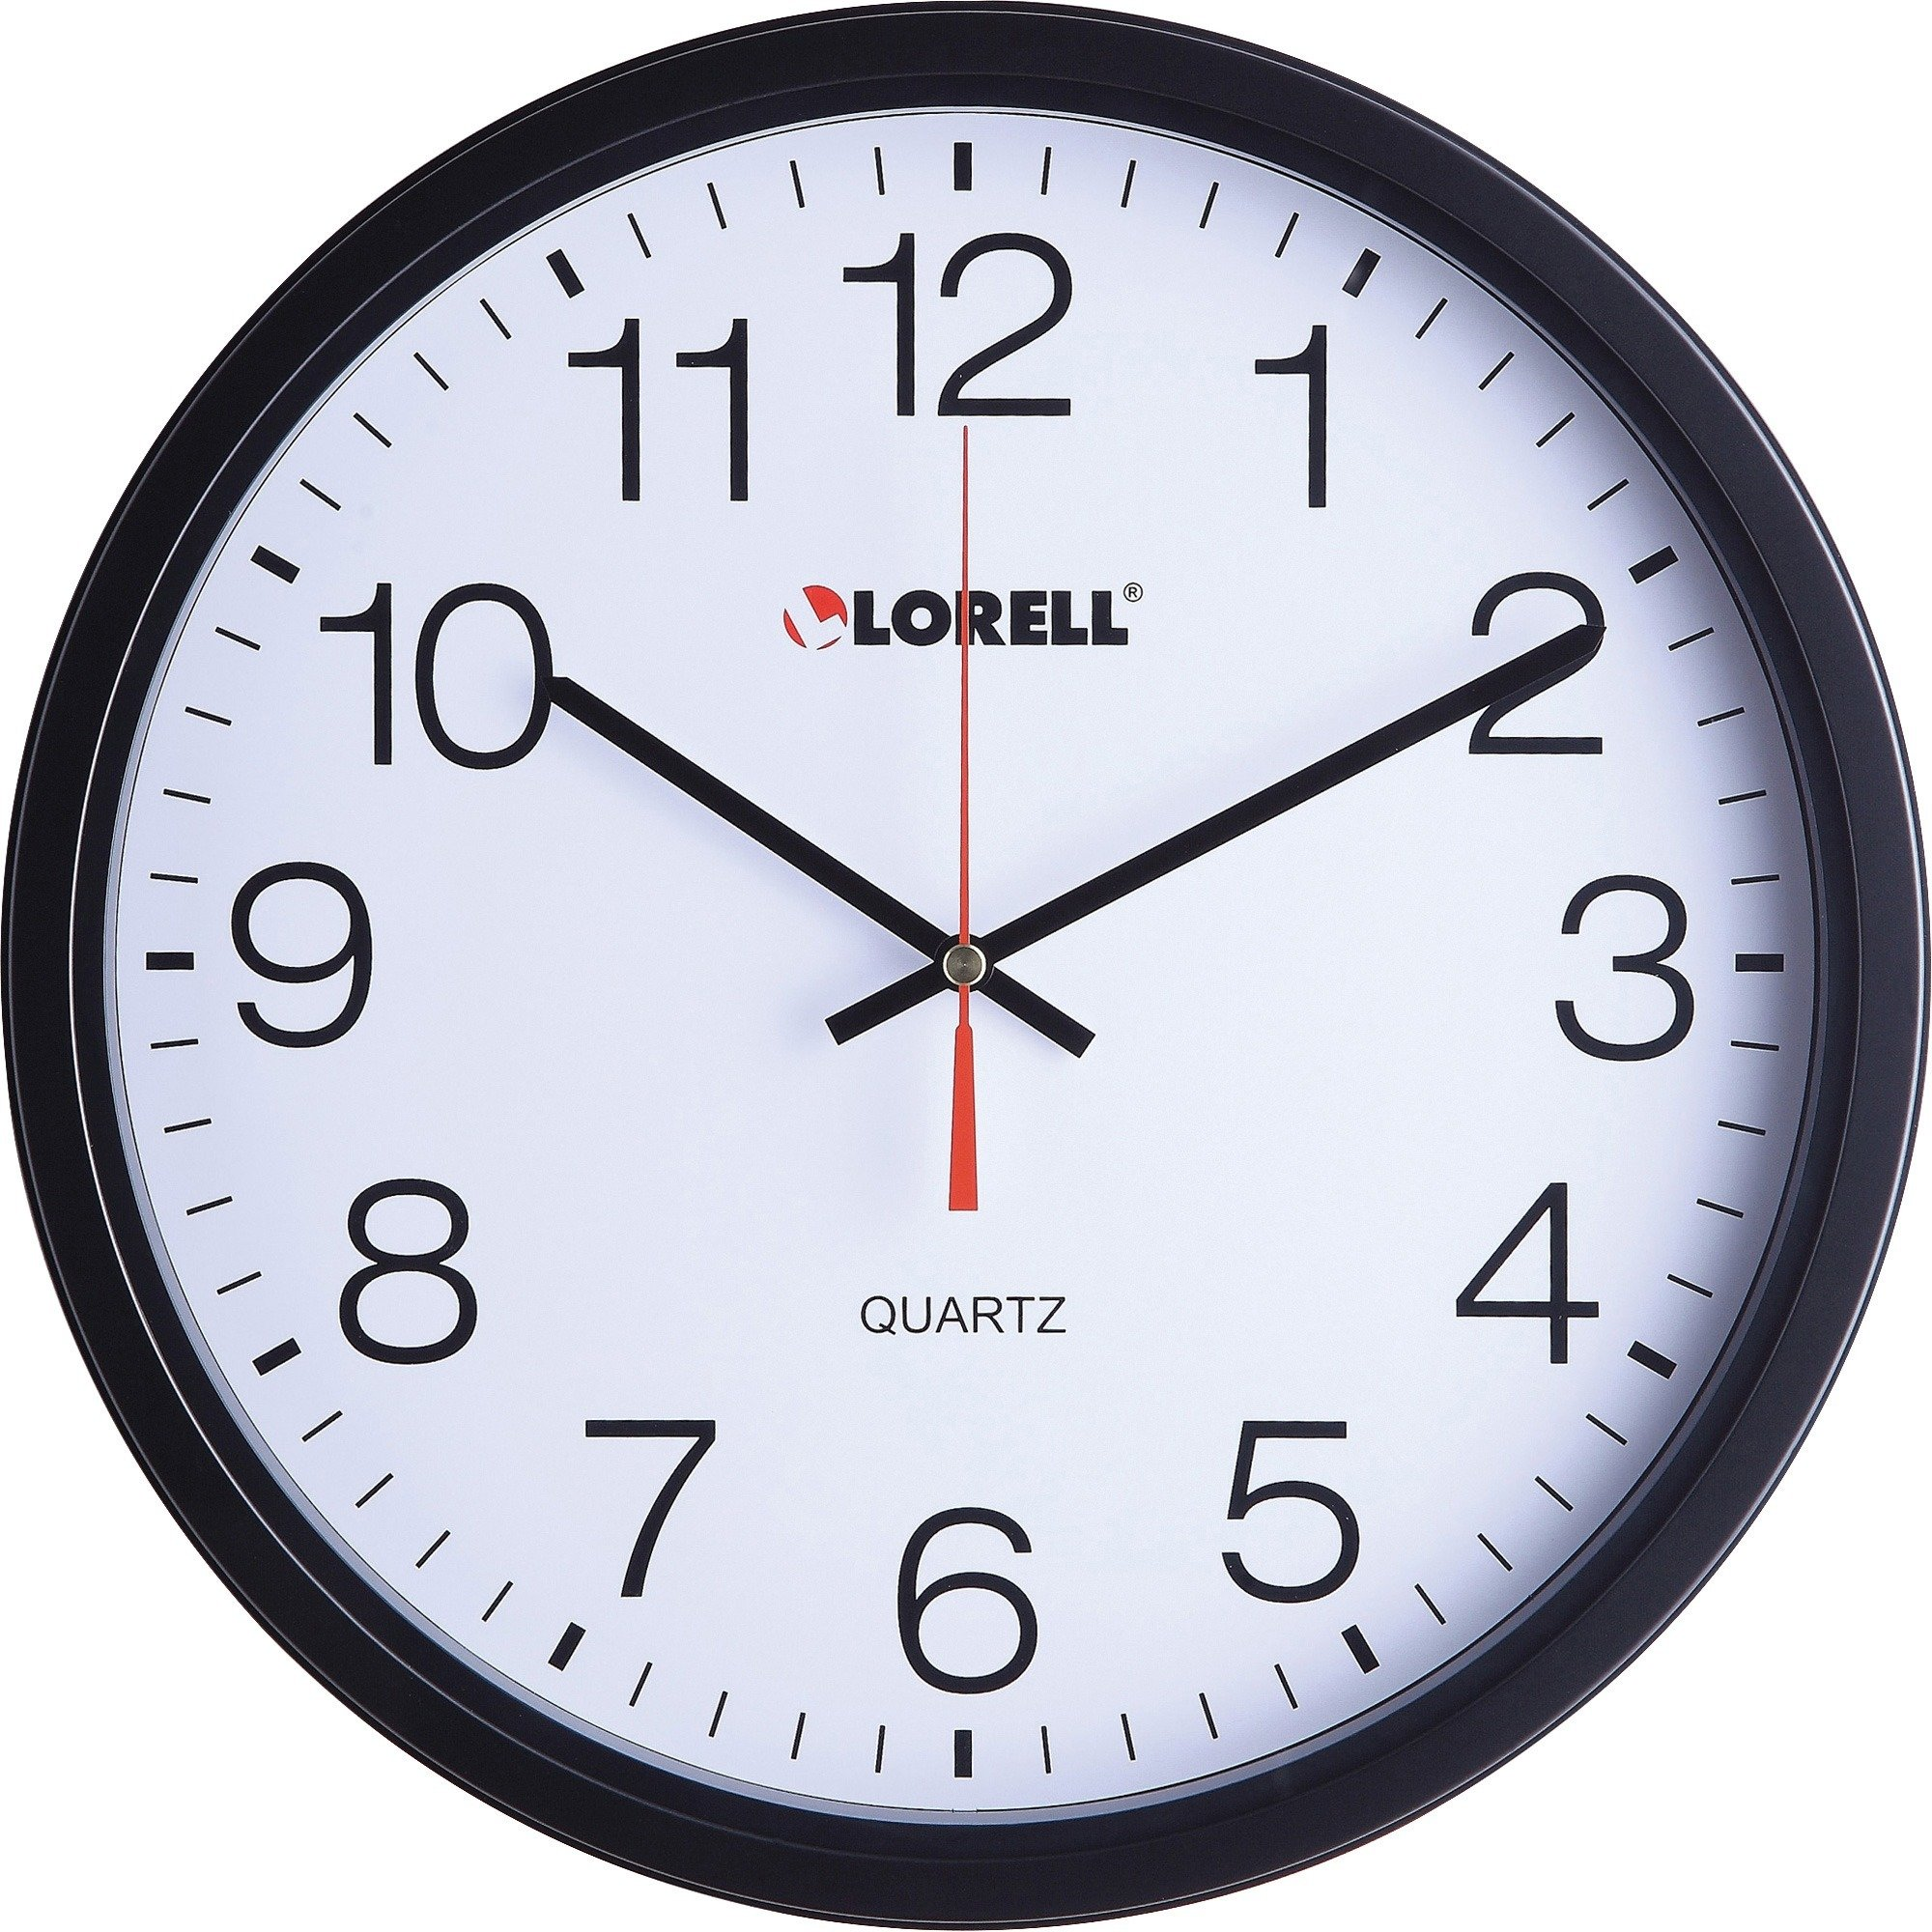 "Lorell 12-1/2"" Slimline Wall Clock - Each"